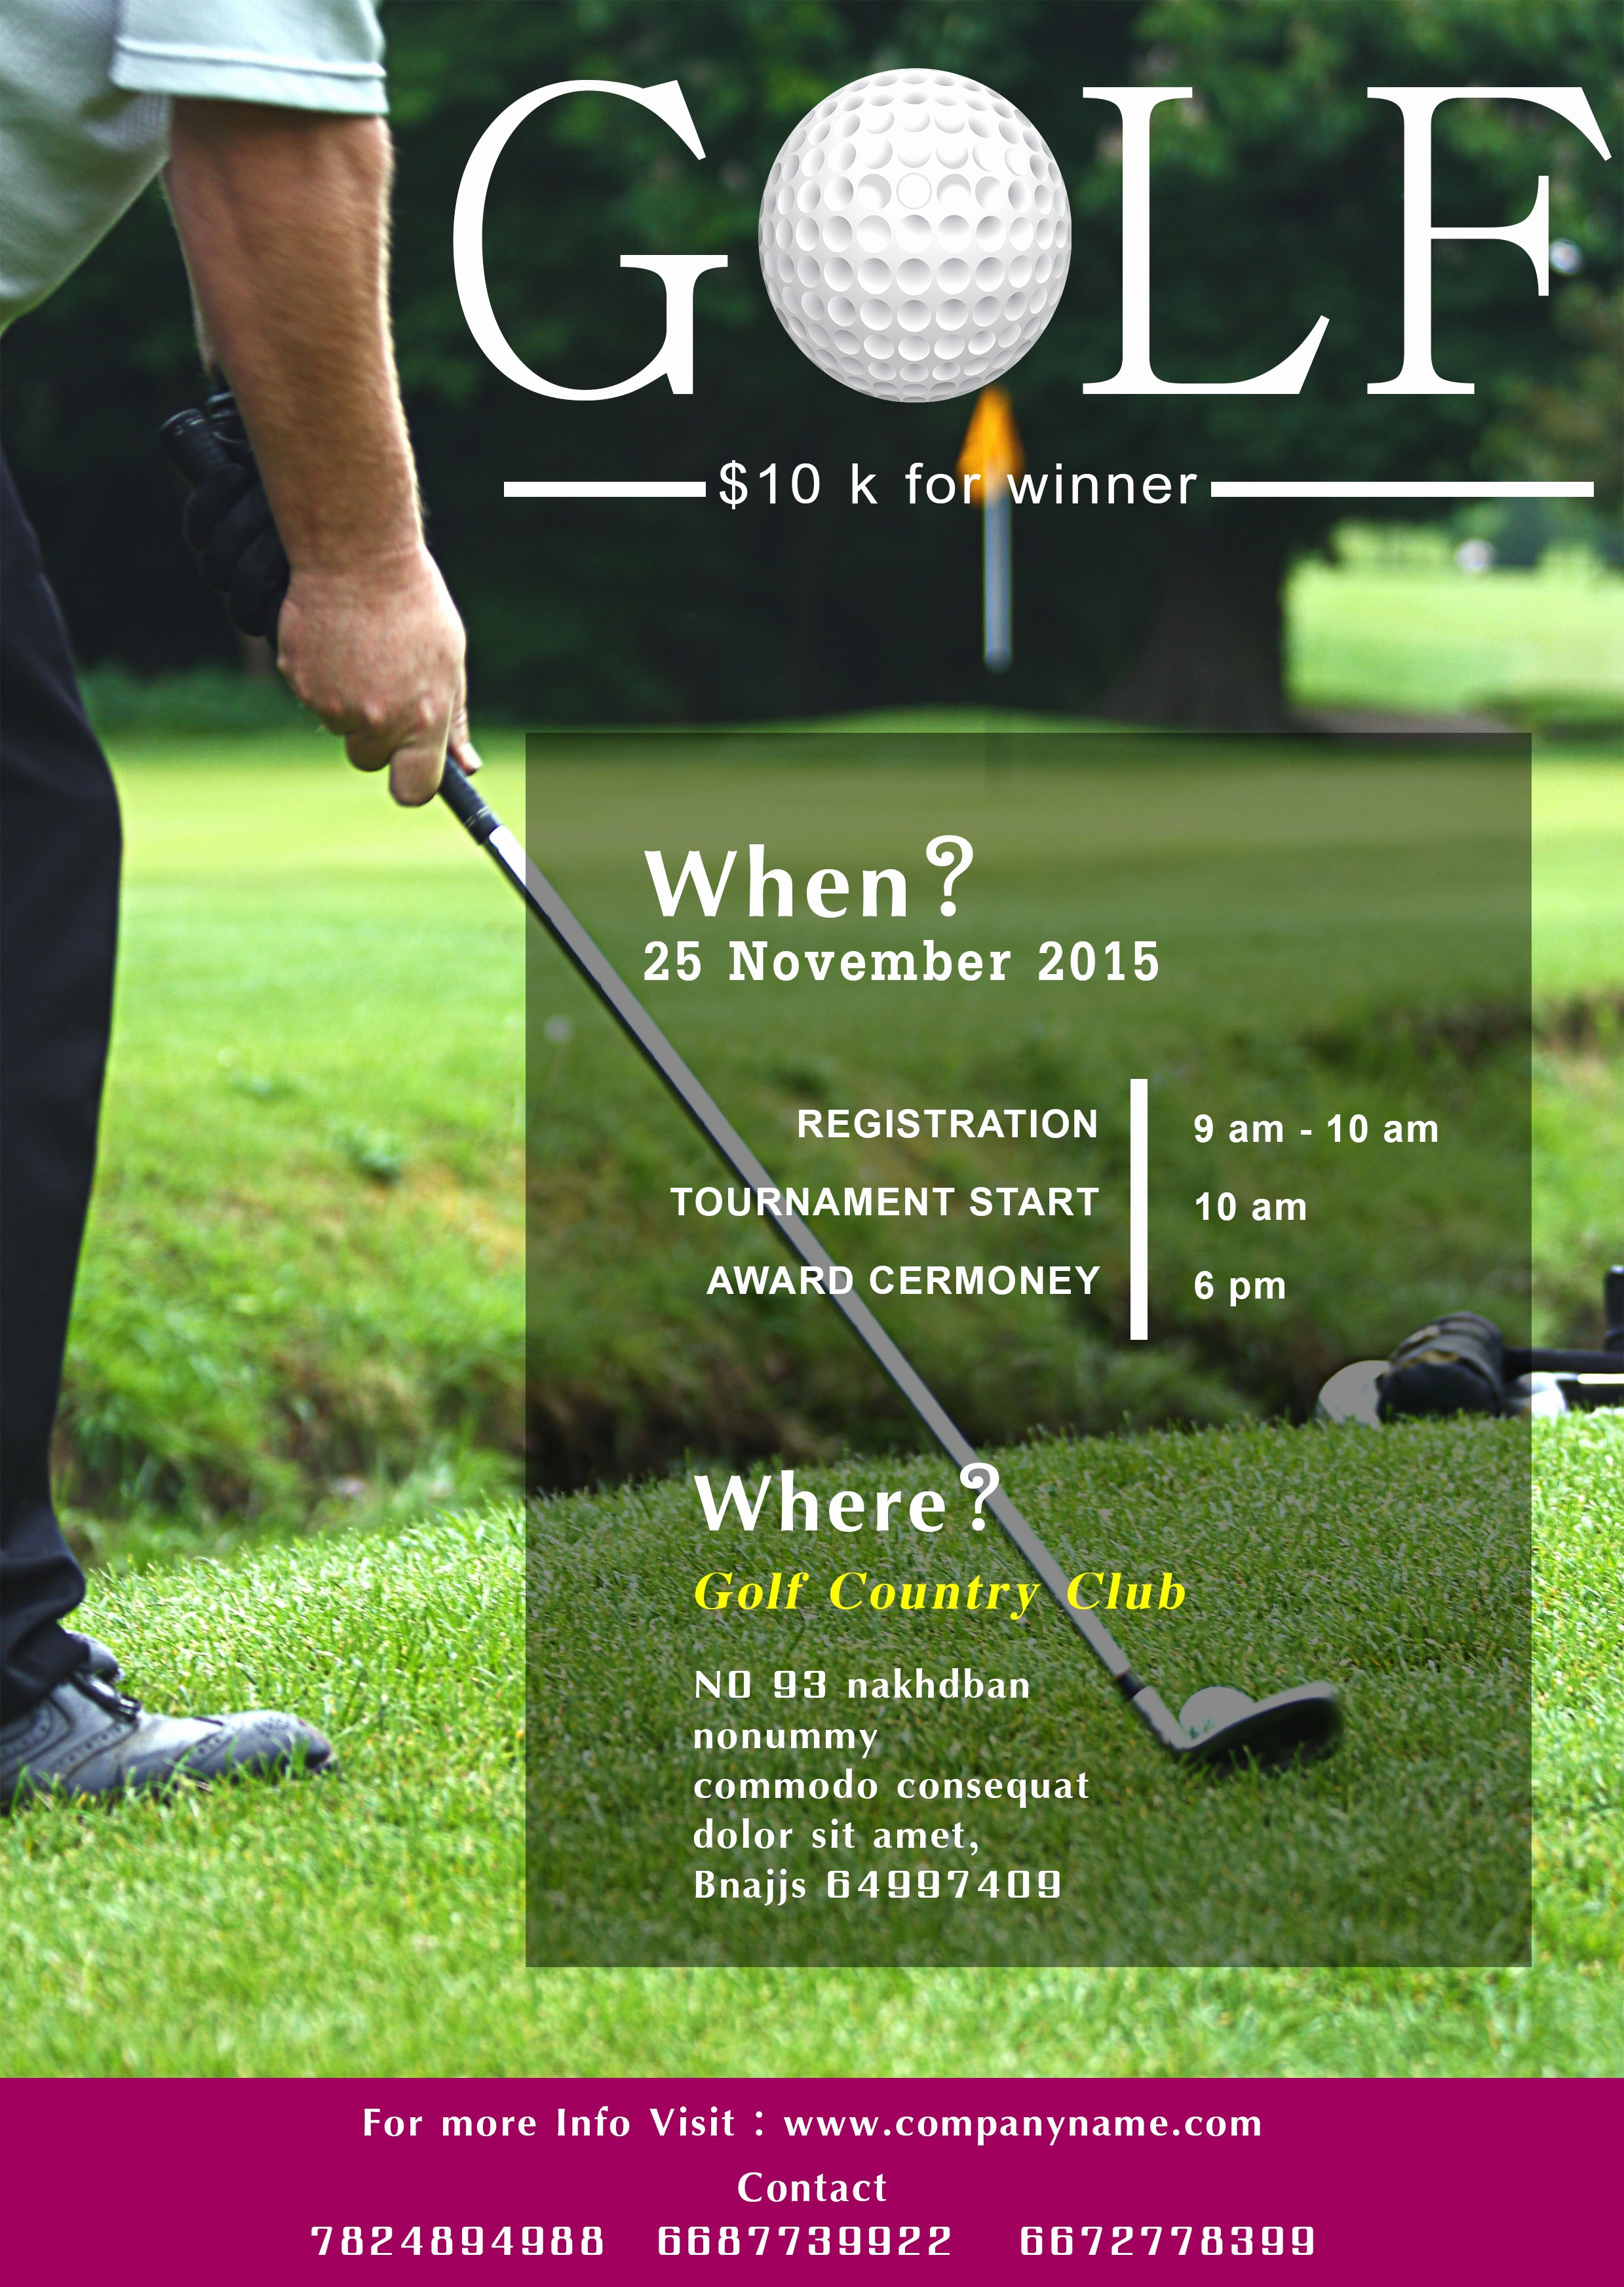 Free Golf Outing Flyer Template Luxury 15 Free Golf tournament Flyer Templates Fundraiser